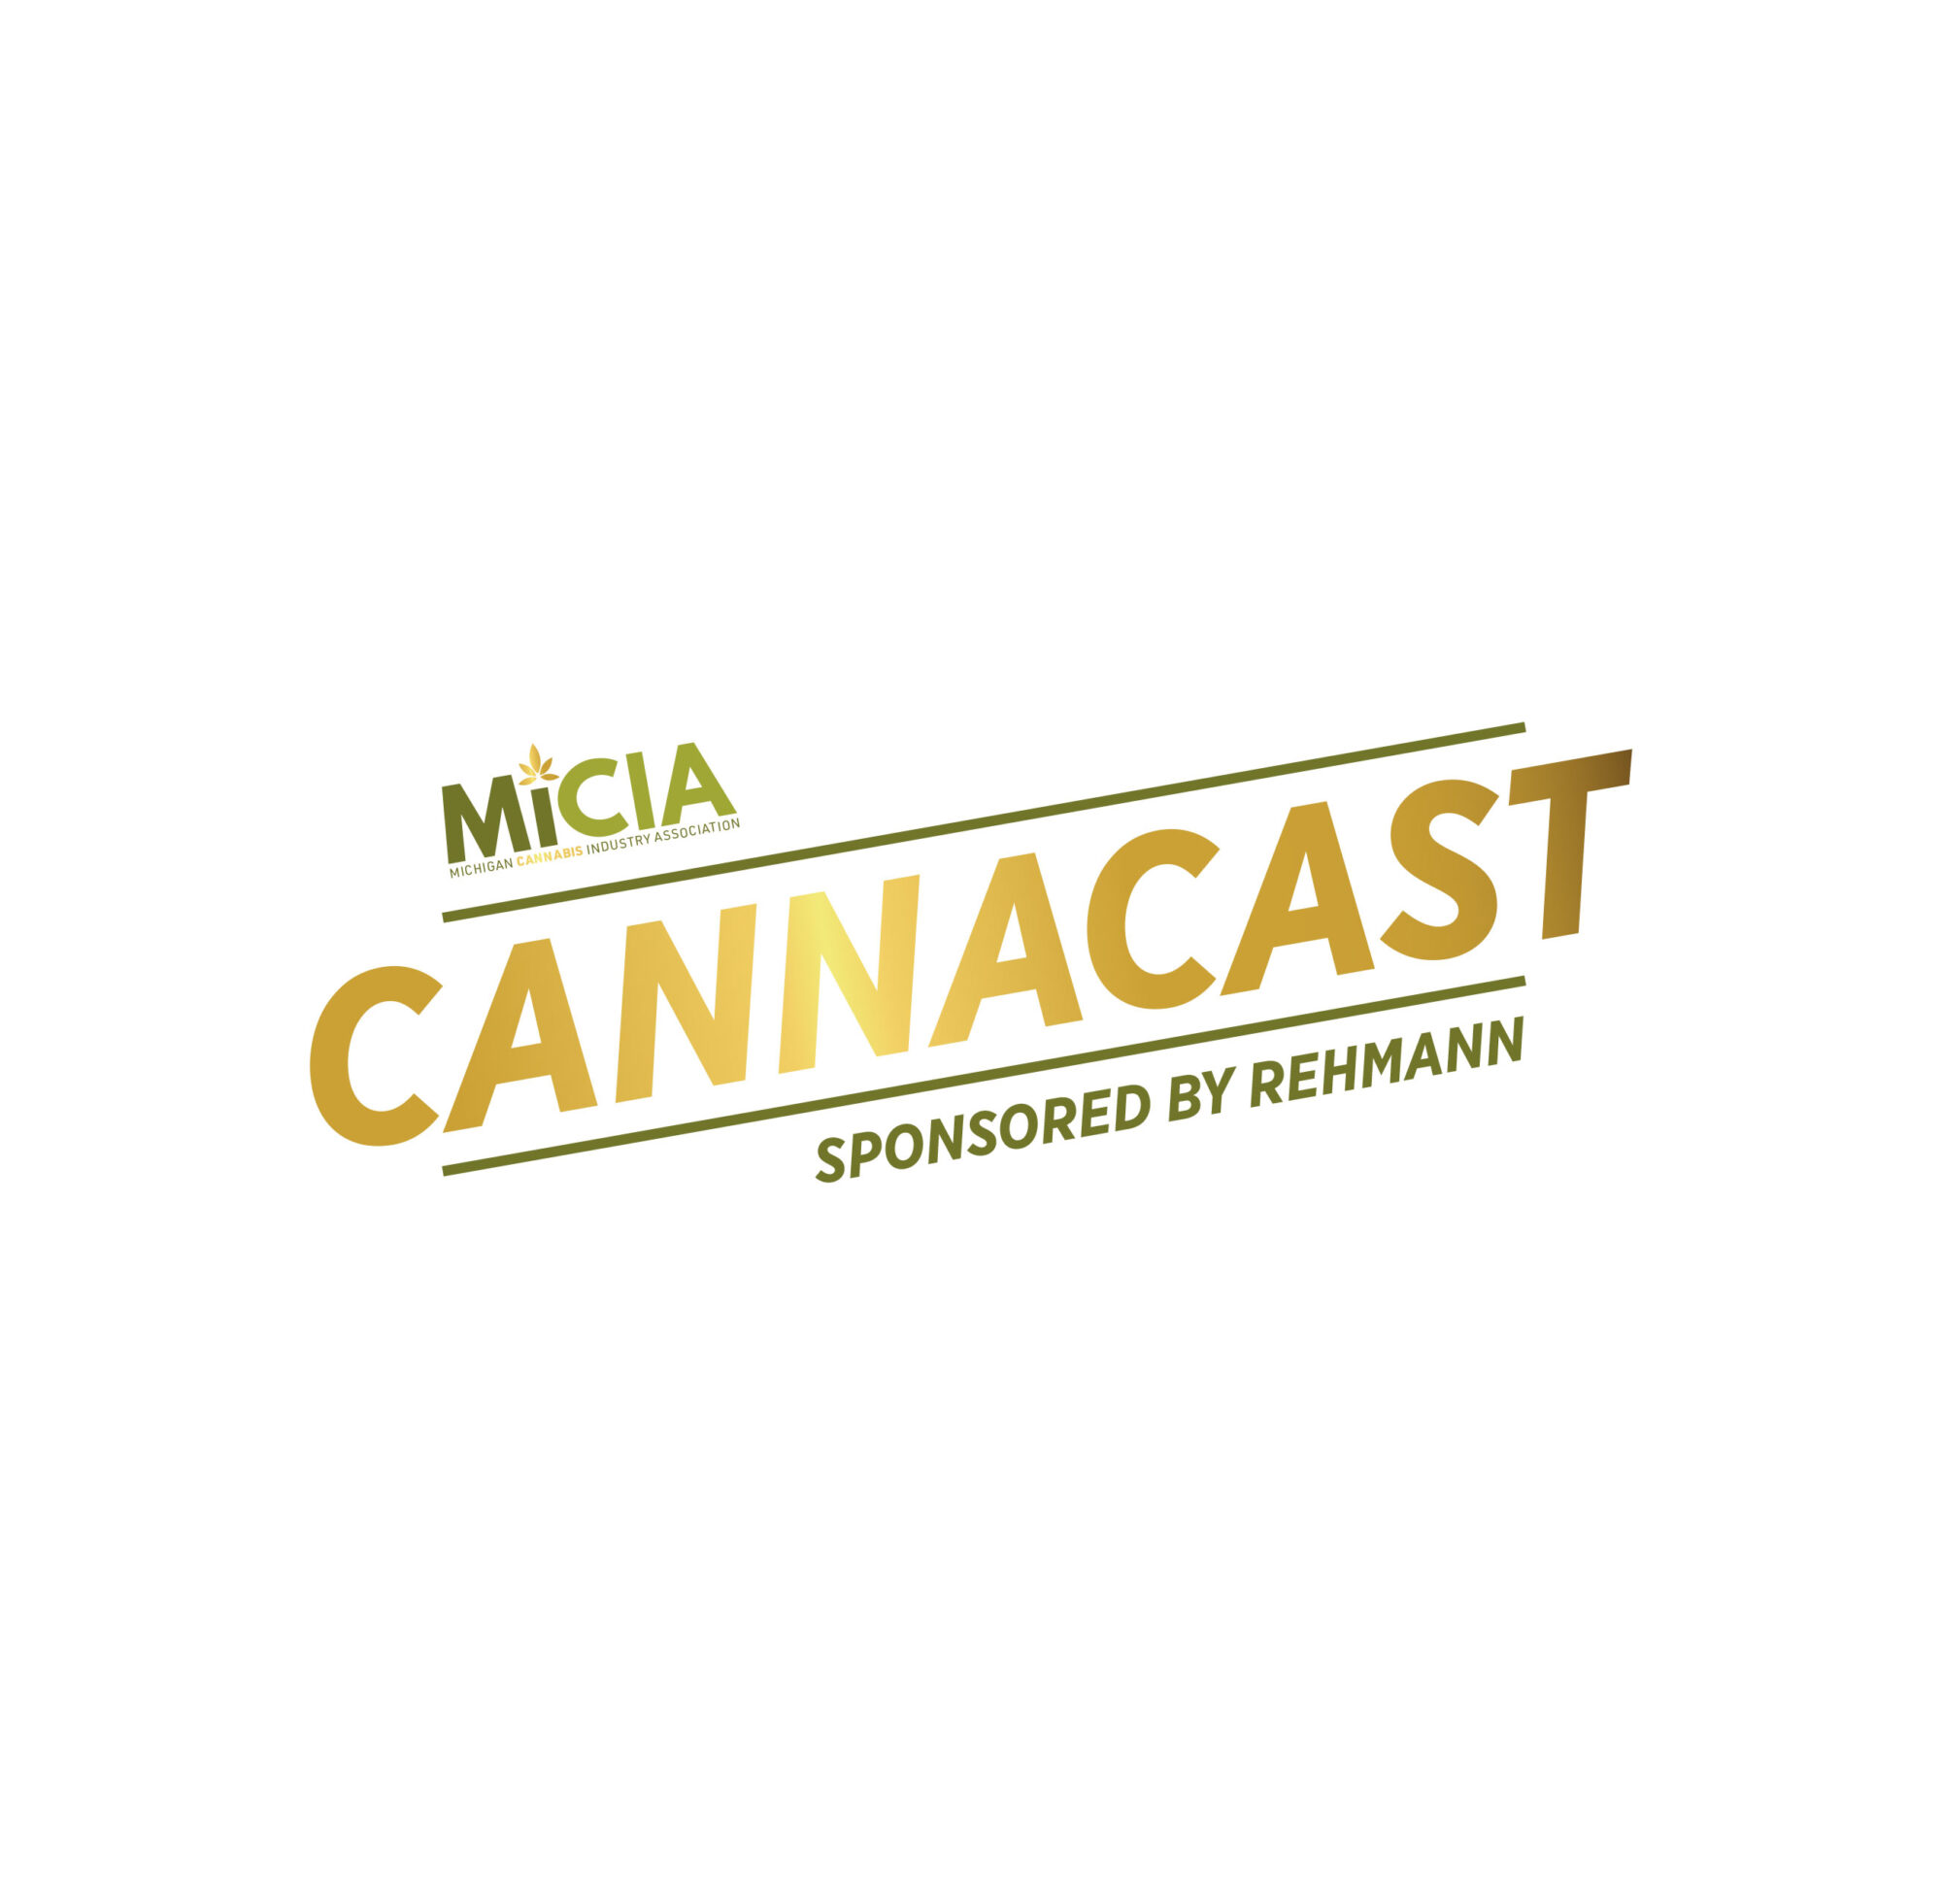 MICHIGAN CANNACAST EPISODE 9: LEGALLY SPEAKING, UNDERSTANDING AND OVERCOMING OBSTACLES TO STARTING YOUR BUSINESS